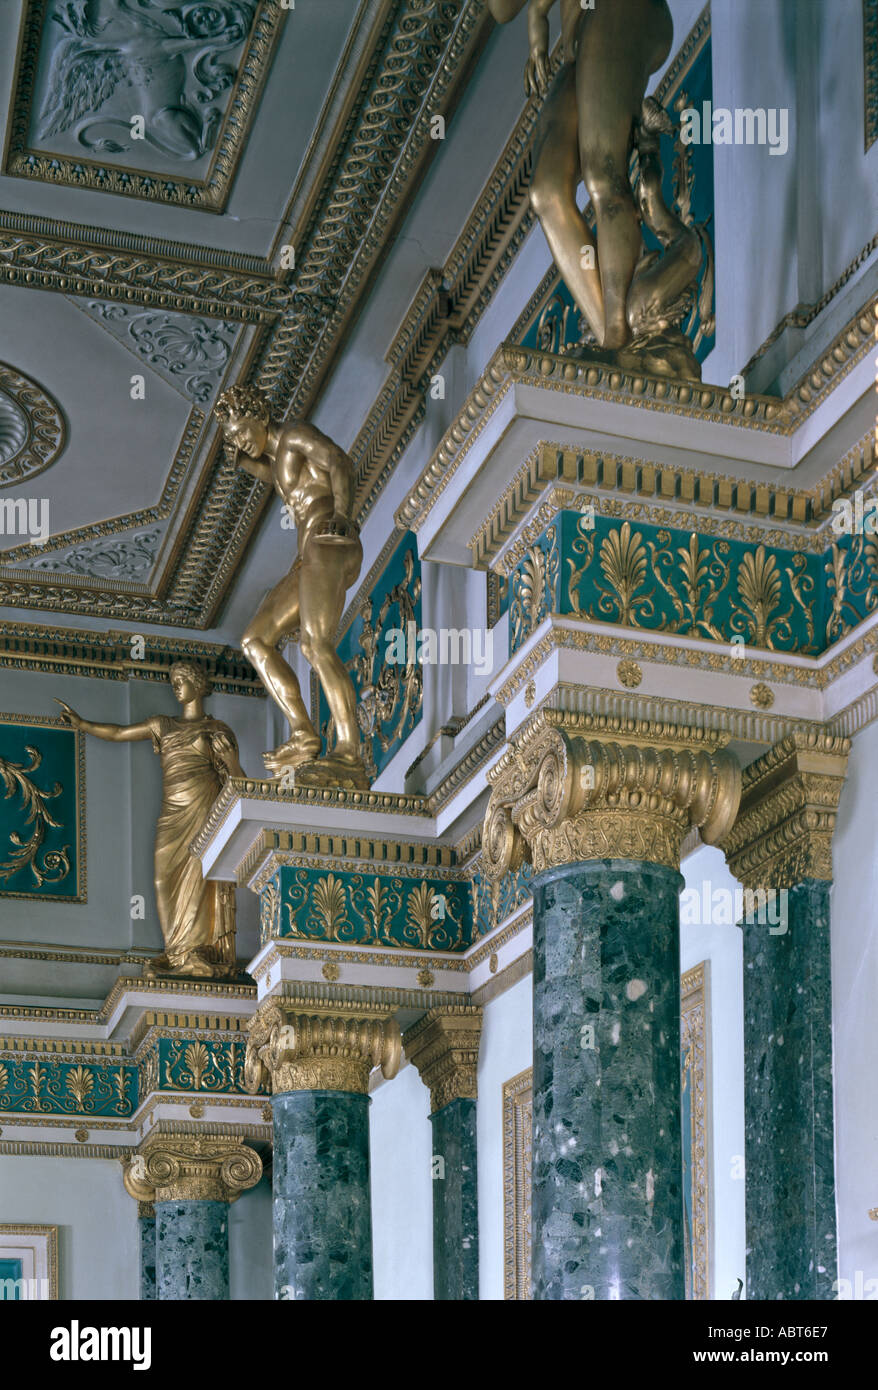 Syon House, Brentford, Middlesex, England, 1760-69. Detail in the Ante-room, also known as the Trophy Room. - Stock Image